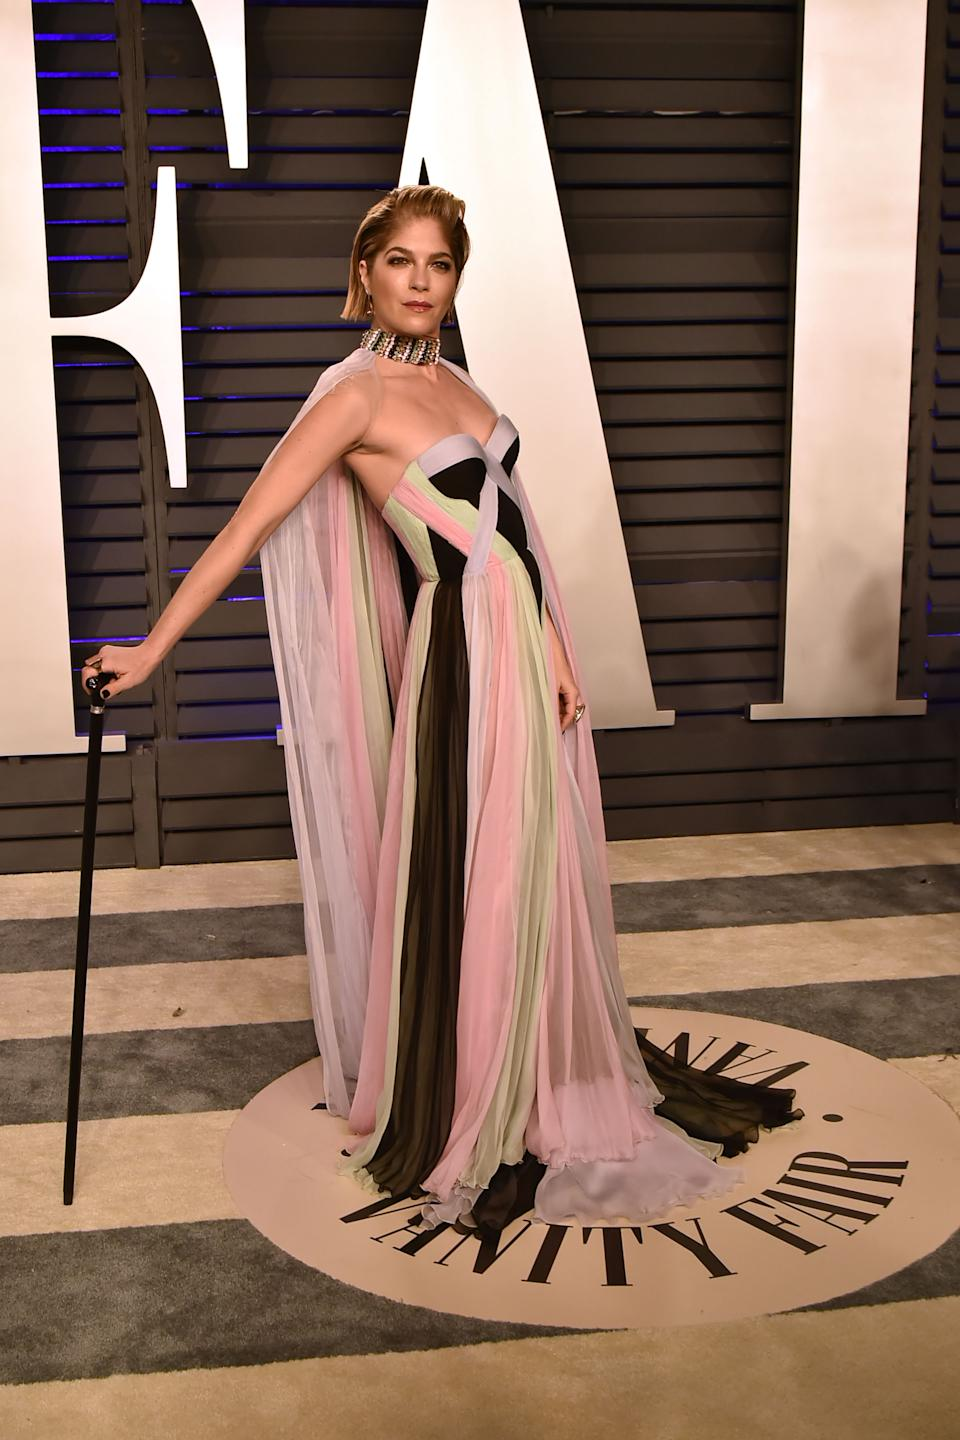 Selma Blair attends the 2019 Vanity Fair Oscar Party. (Photo by David Crotty/Patrick McMullan via Getty Images)